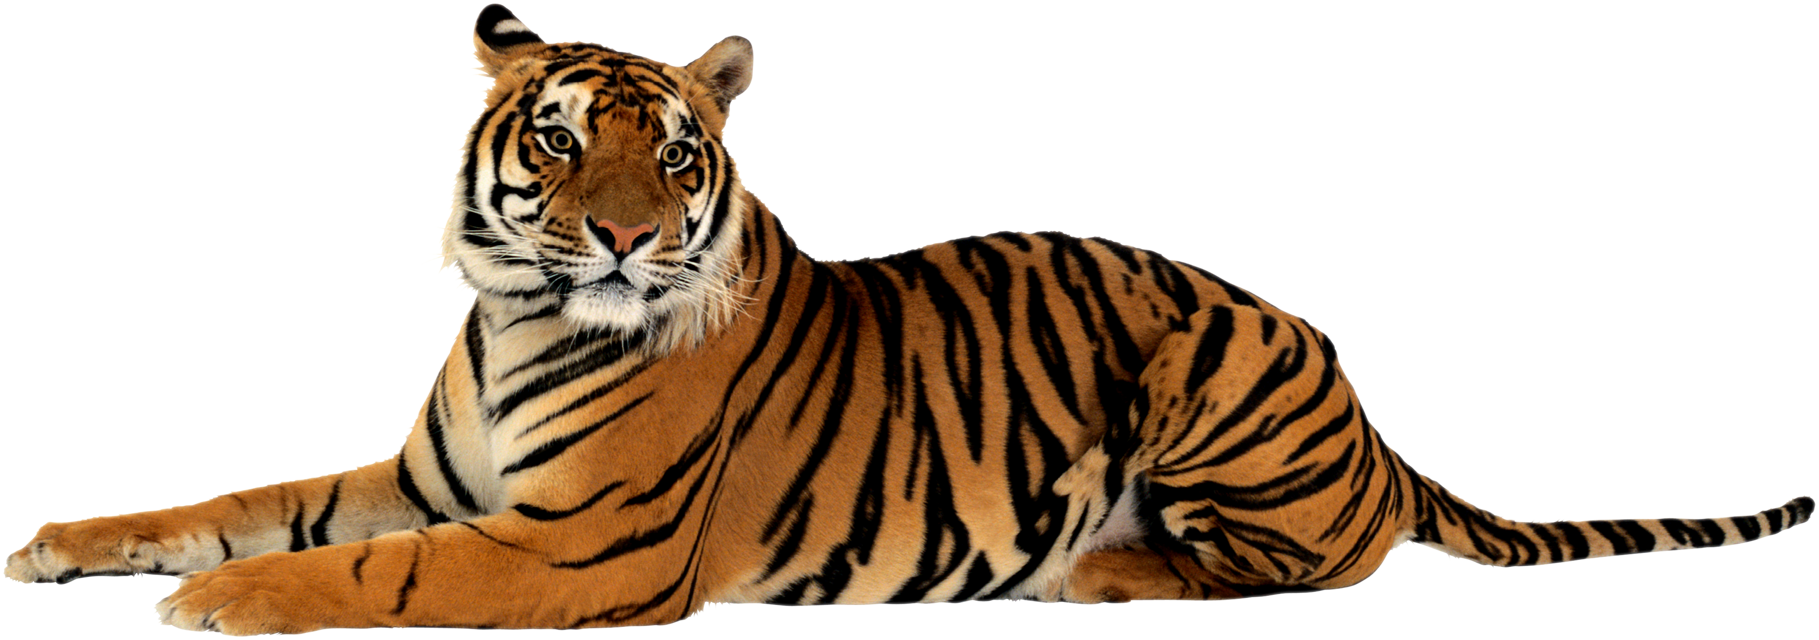 tiger PNG HD quality - Tiger HD PNG